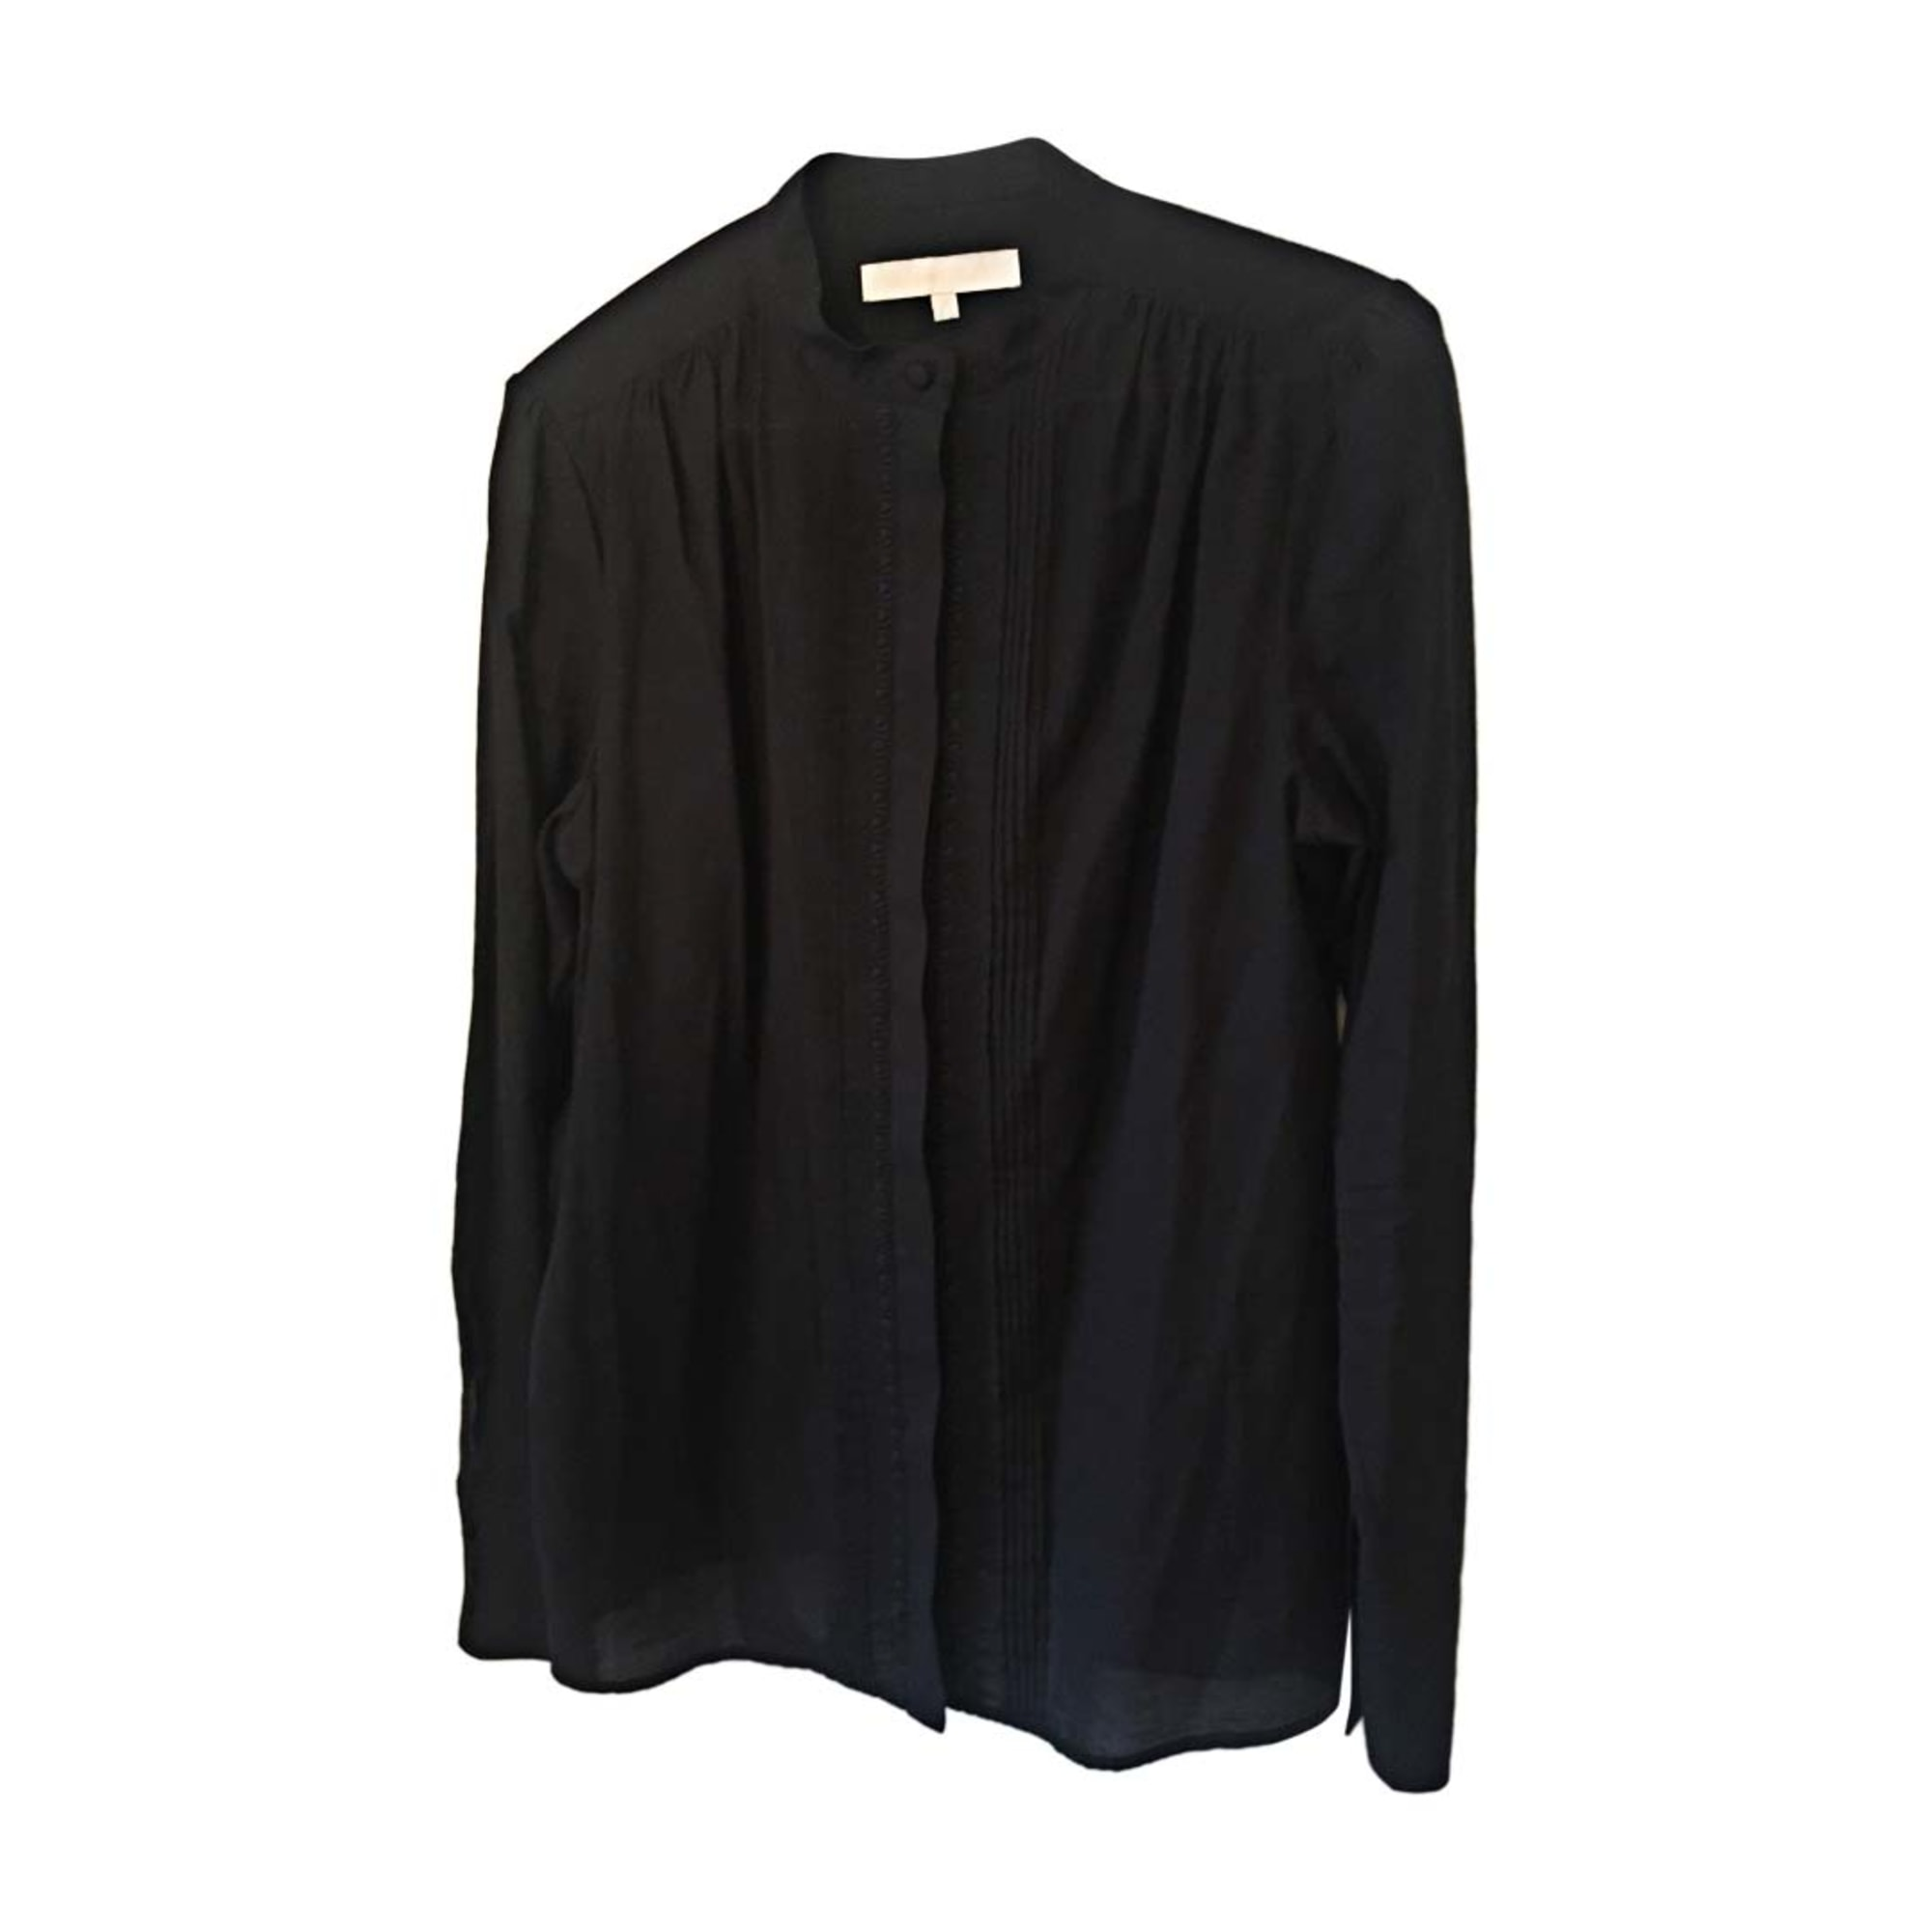 Shirt VANESSA BRUNO Black